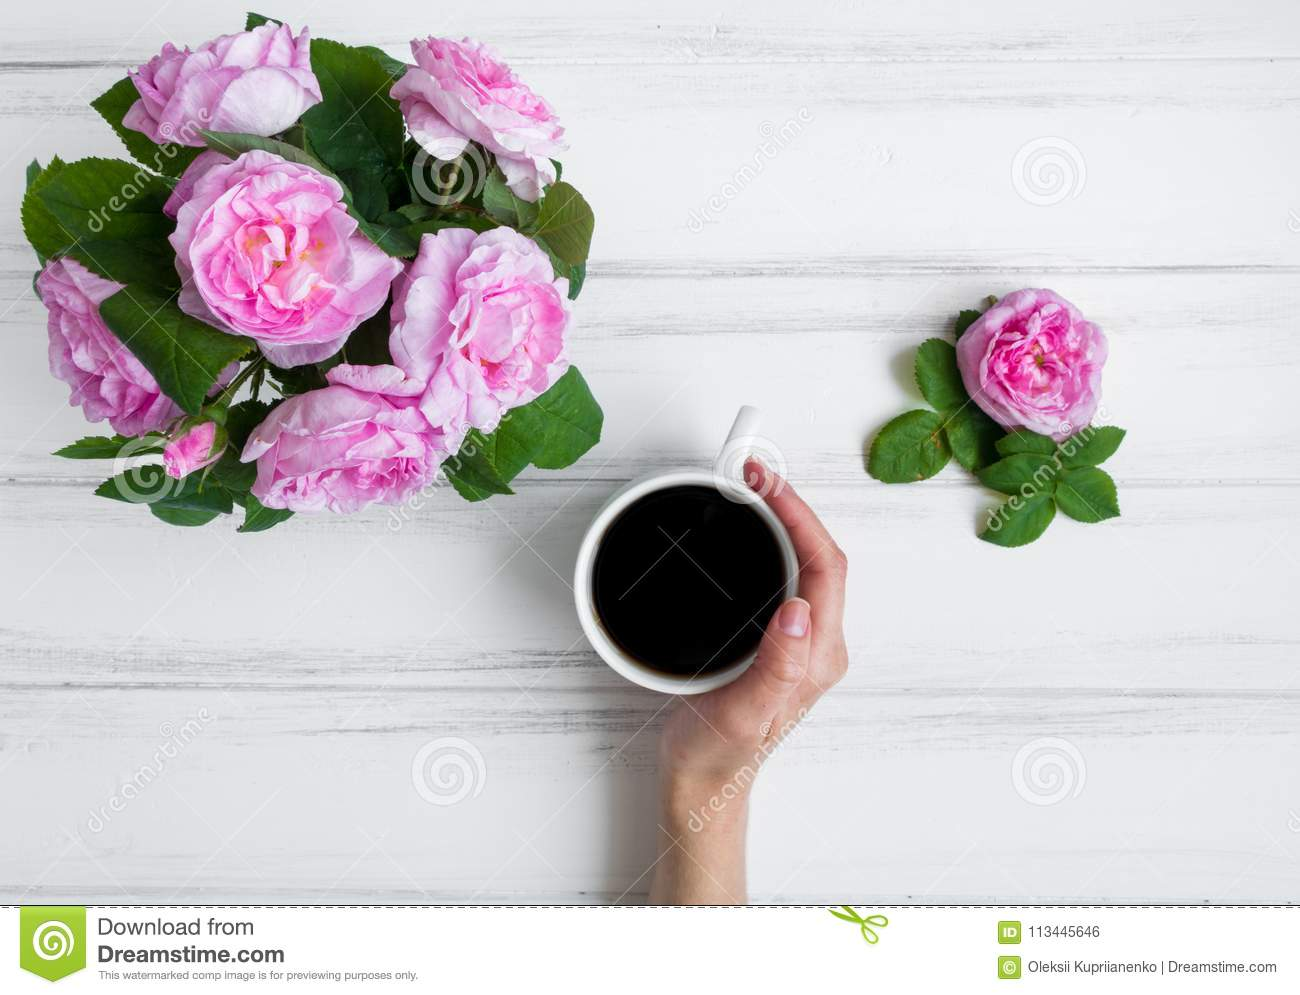 Woman hand holding cup of coffee, surrounded with rose flowers against white vintage wooden table. Flat lay, top view